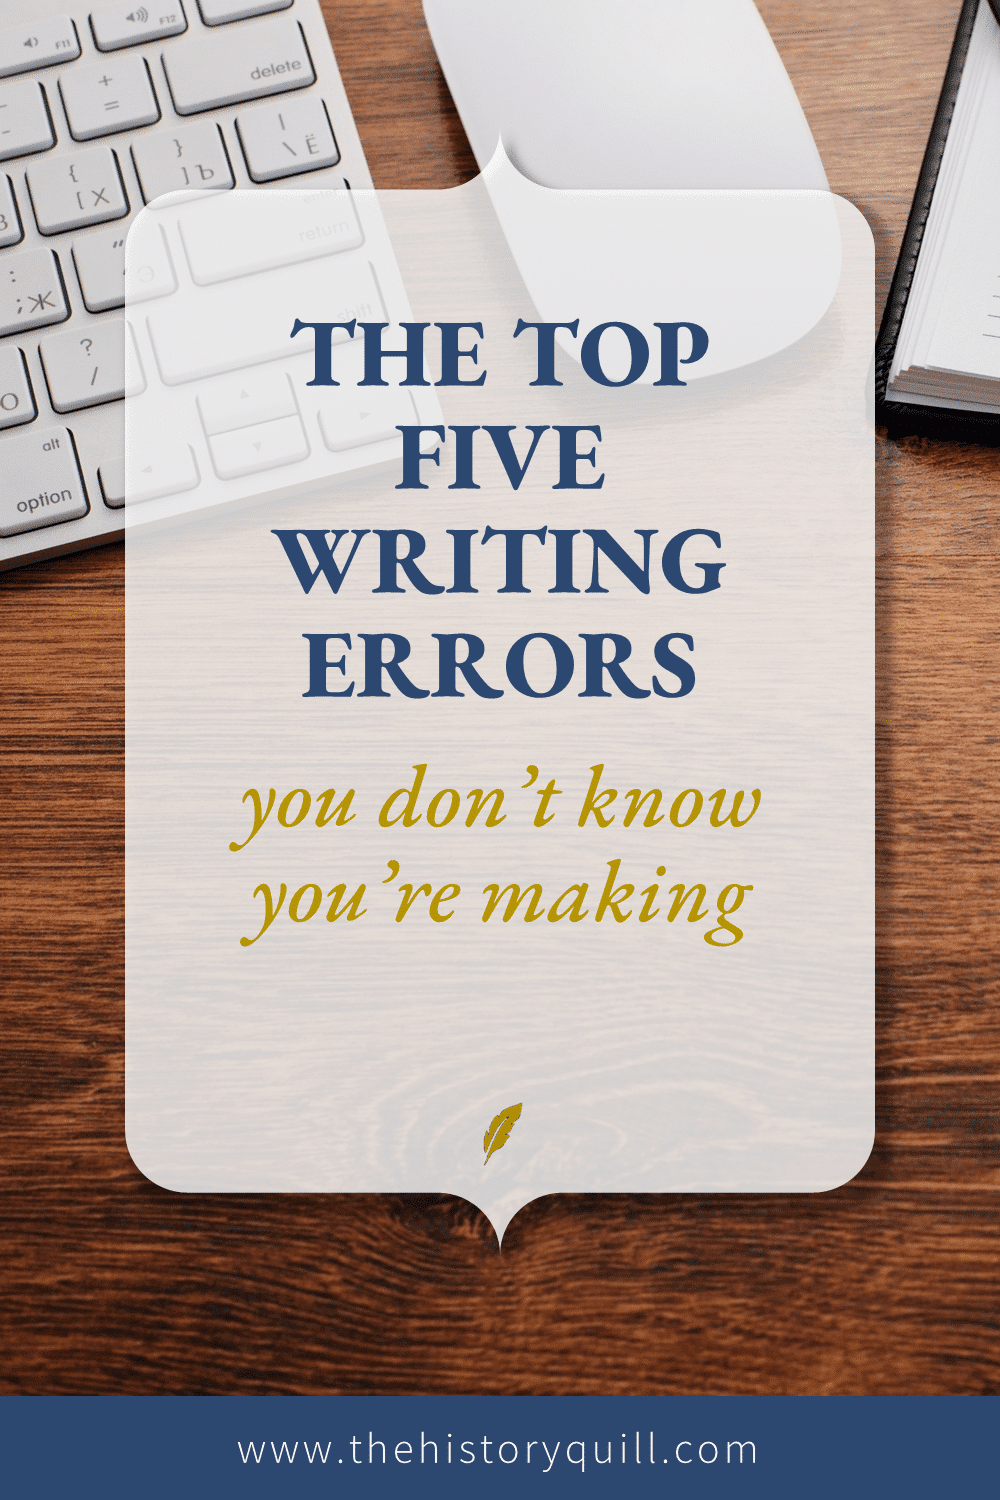 From The History Quill, the top five writing errors you don't know you're making in your historical fiction writing.